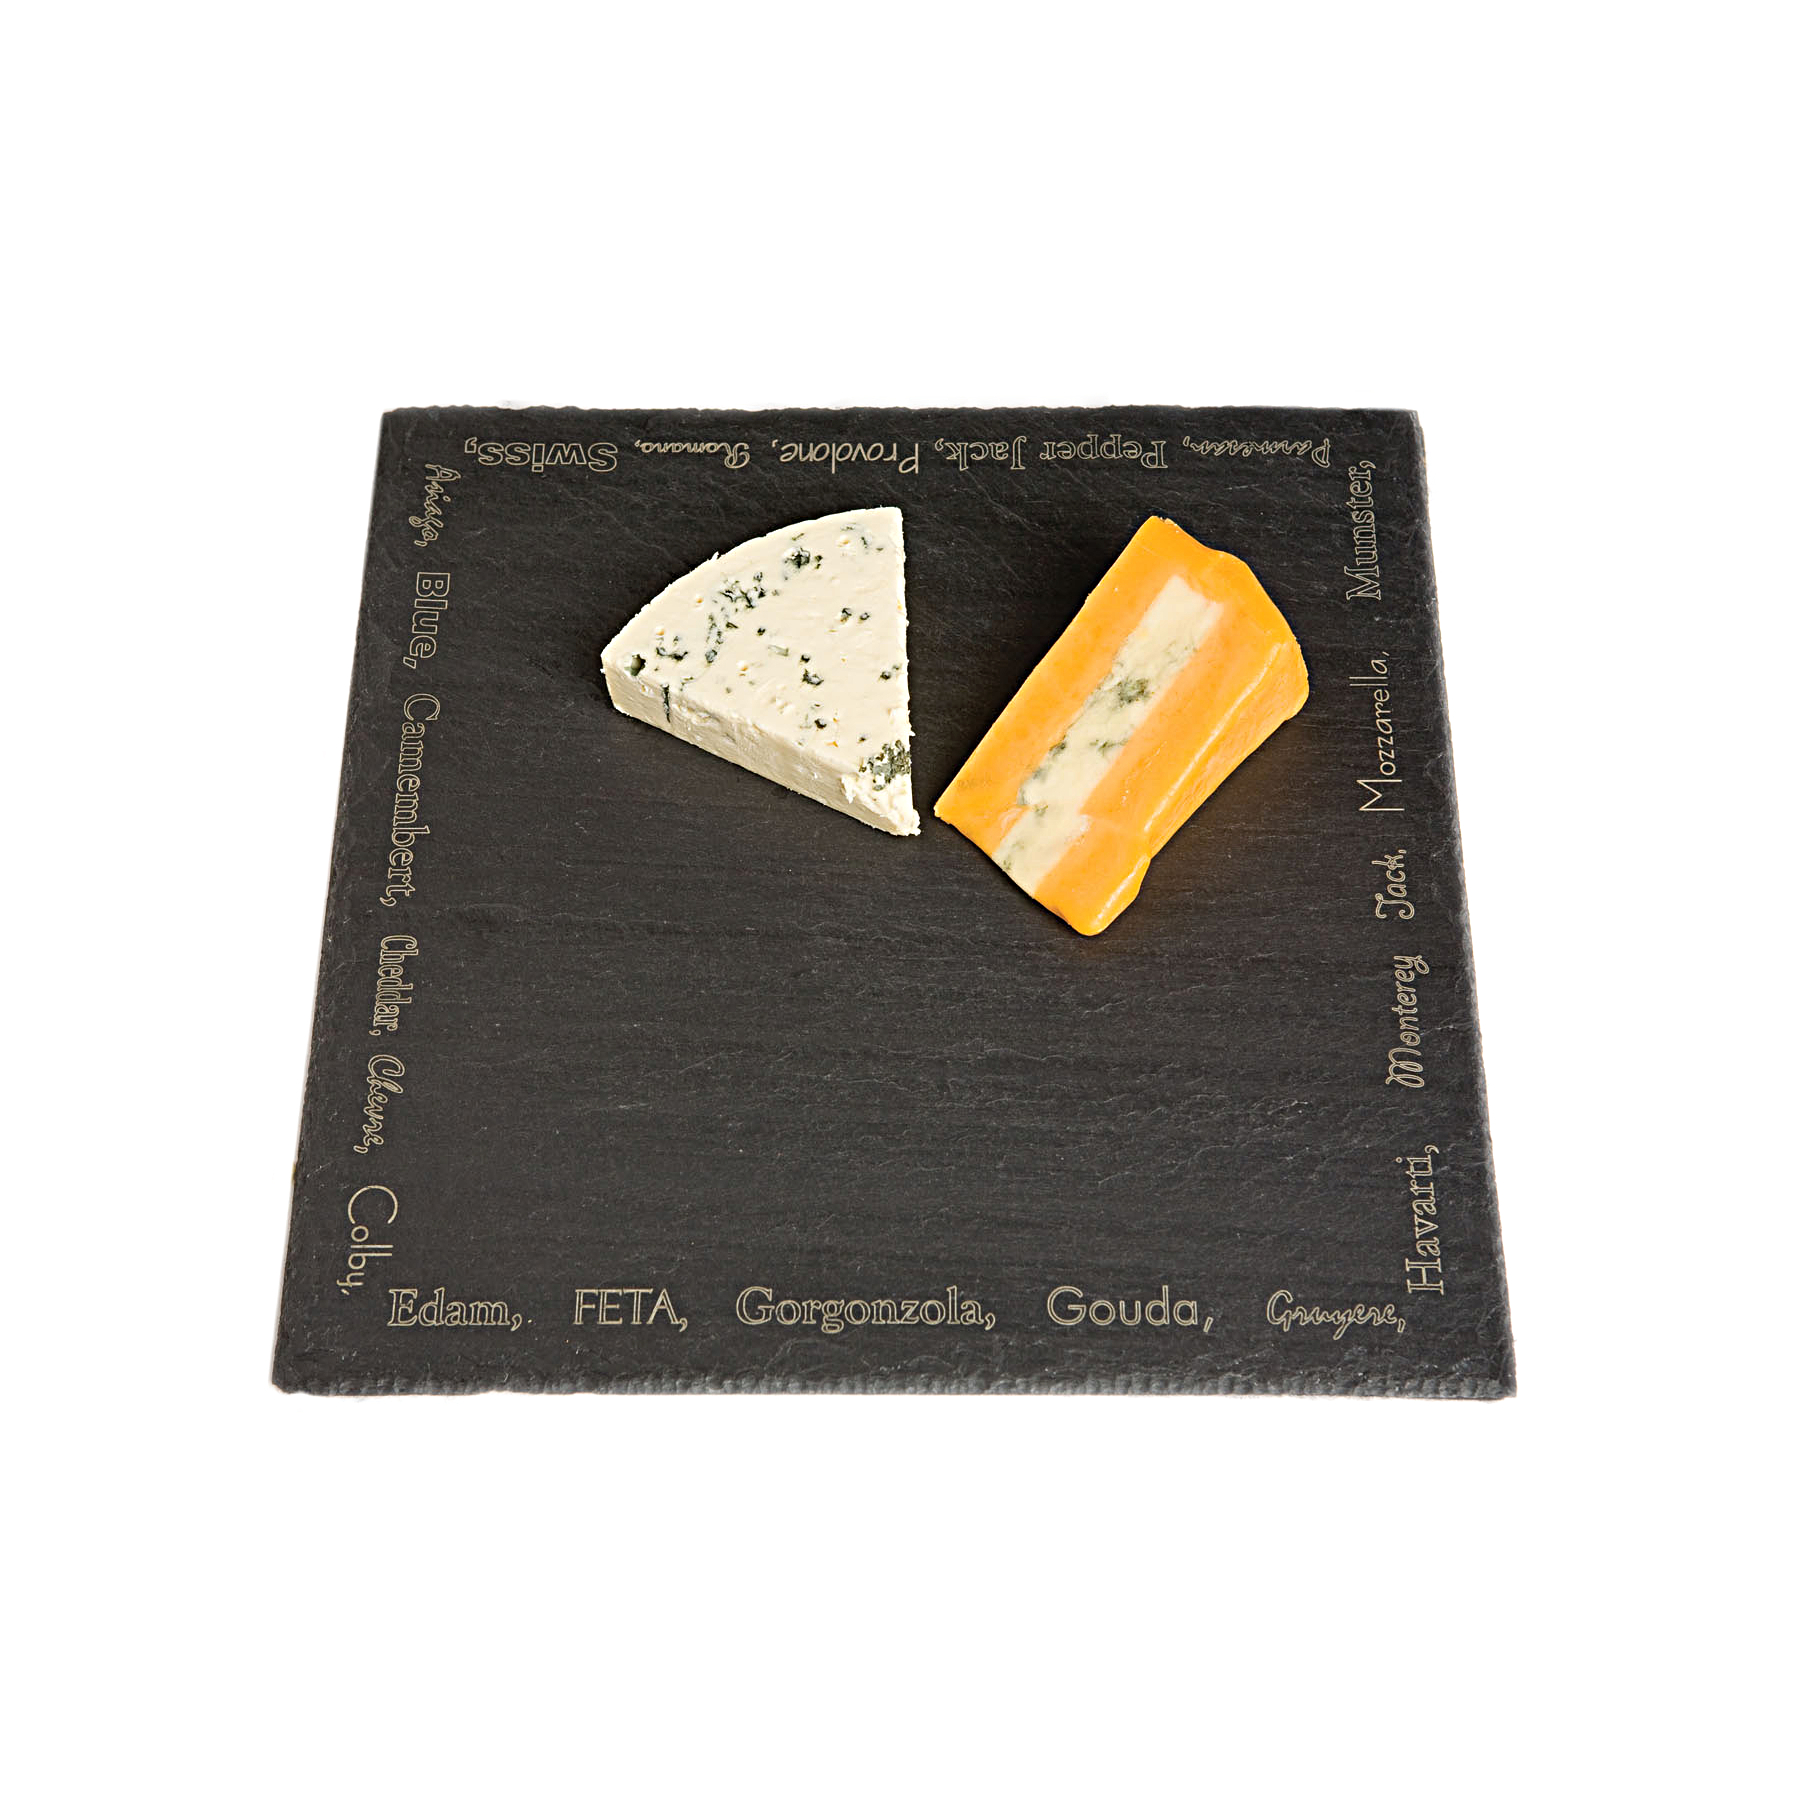 JK Adams Slate 12 x 12 Inch Cheese Tray with Cheese Name Border